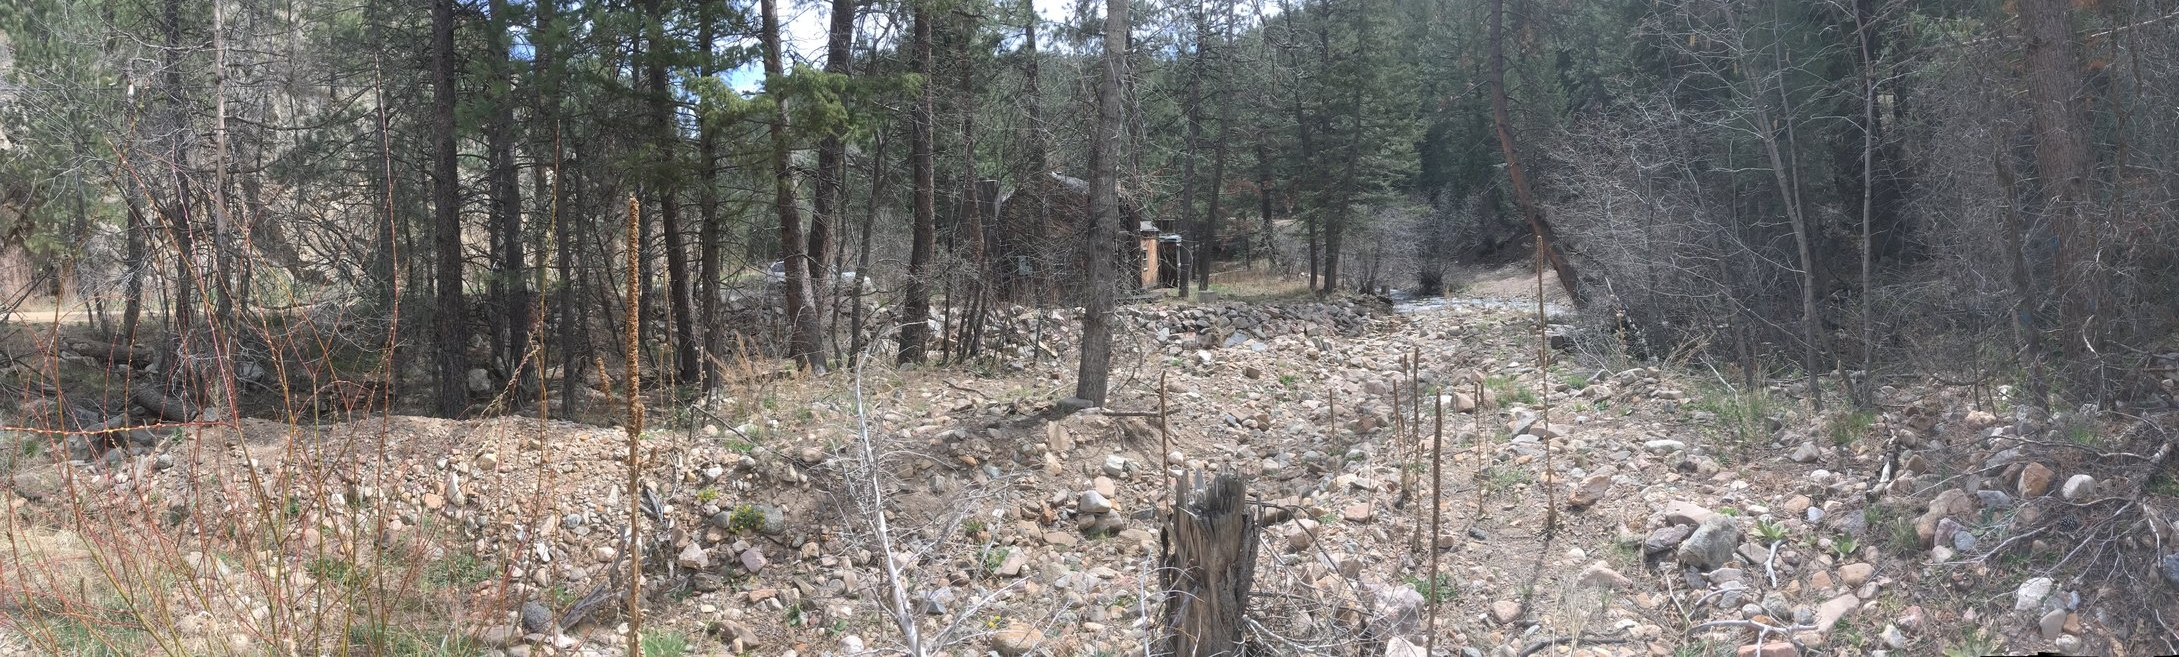 Before Construction: The creek corridor filled and covered with flood deposits upstream of a home. The deposits completely filled the channel and posed a significant hazard to the home (April 2017).